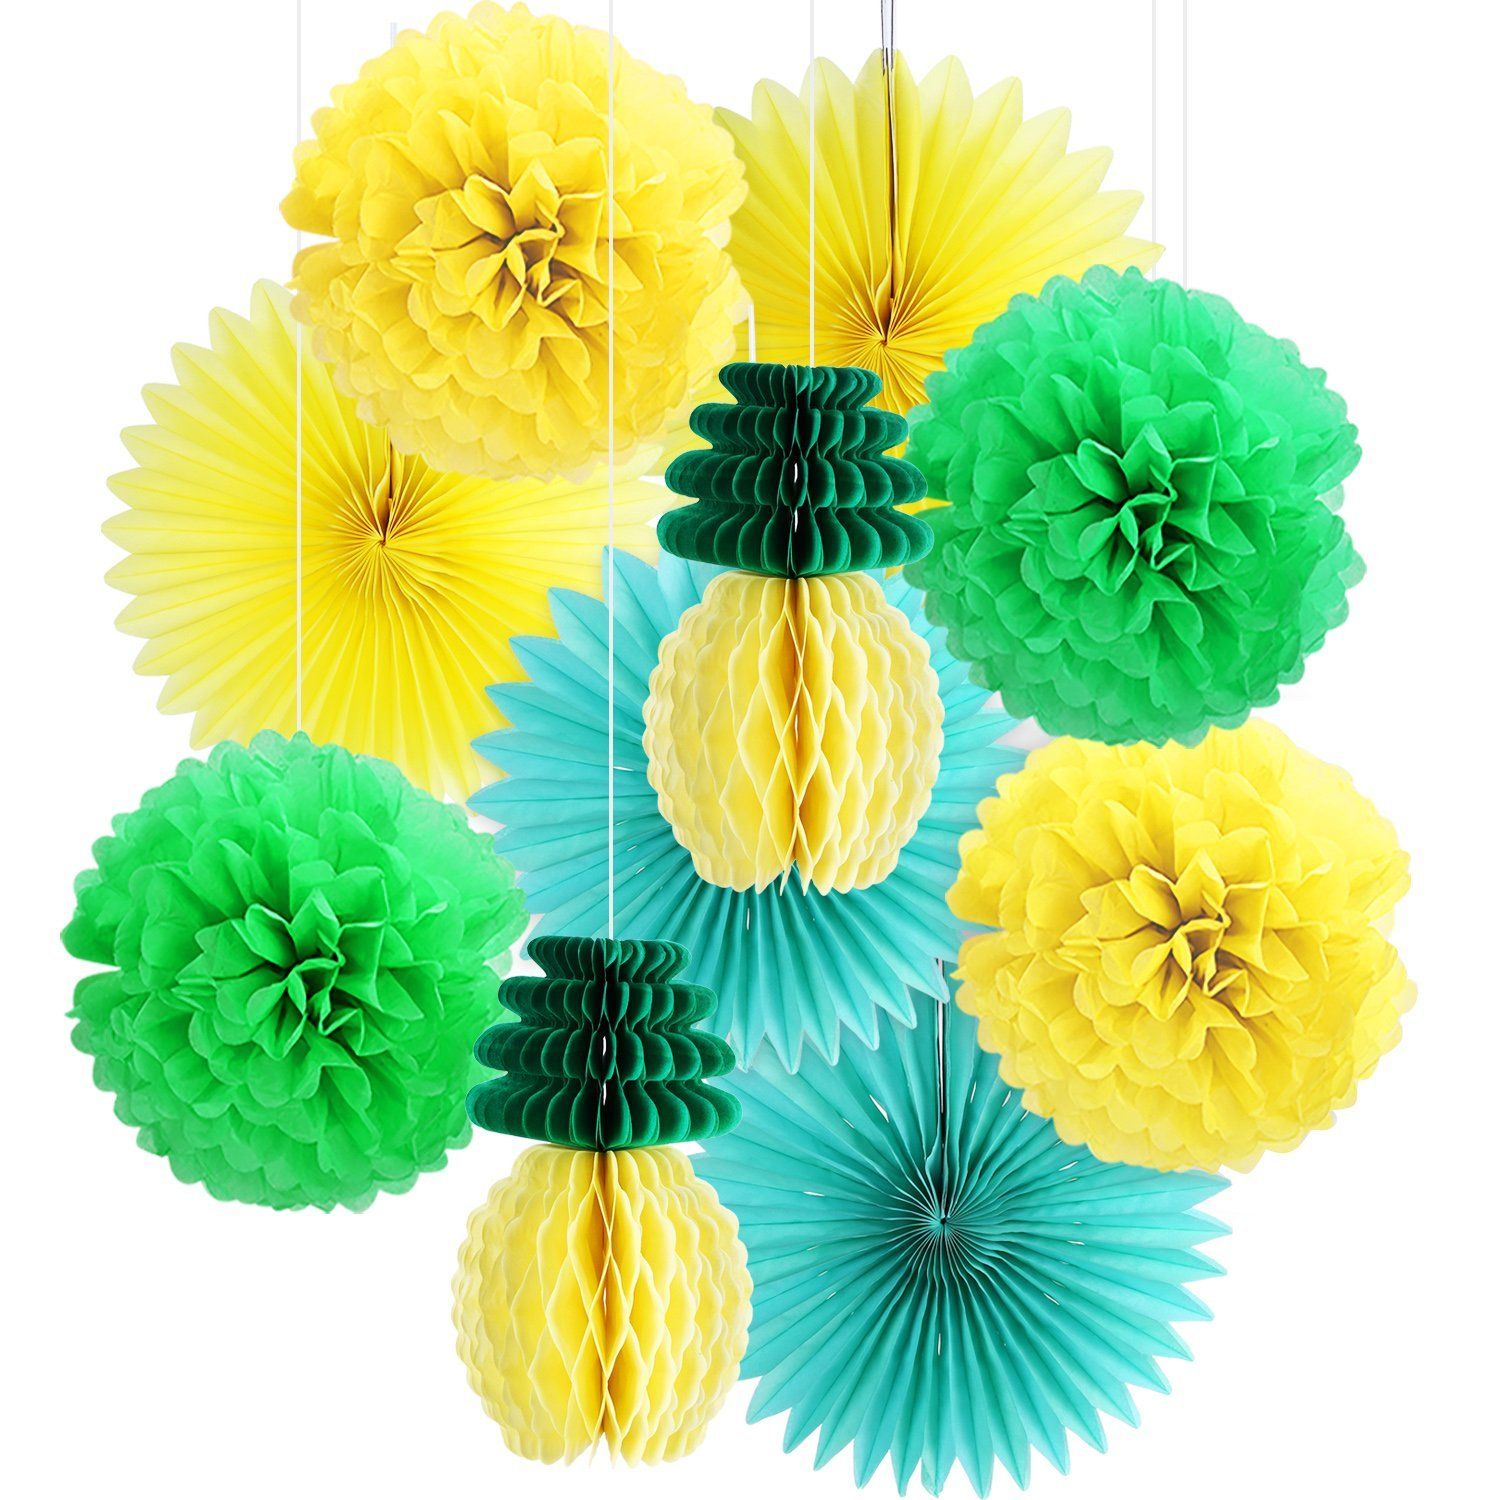 BBTO 10 Pieces Hawaiian Party Decor Set Pineapple Pattern Paper Honeycomb Tissue Paper Fan Pom Poms for Birthday Tropical Luau Party Decoration